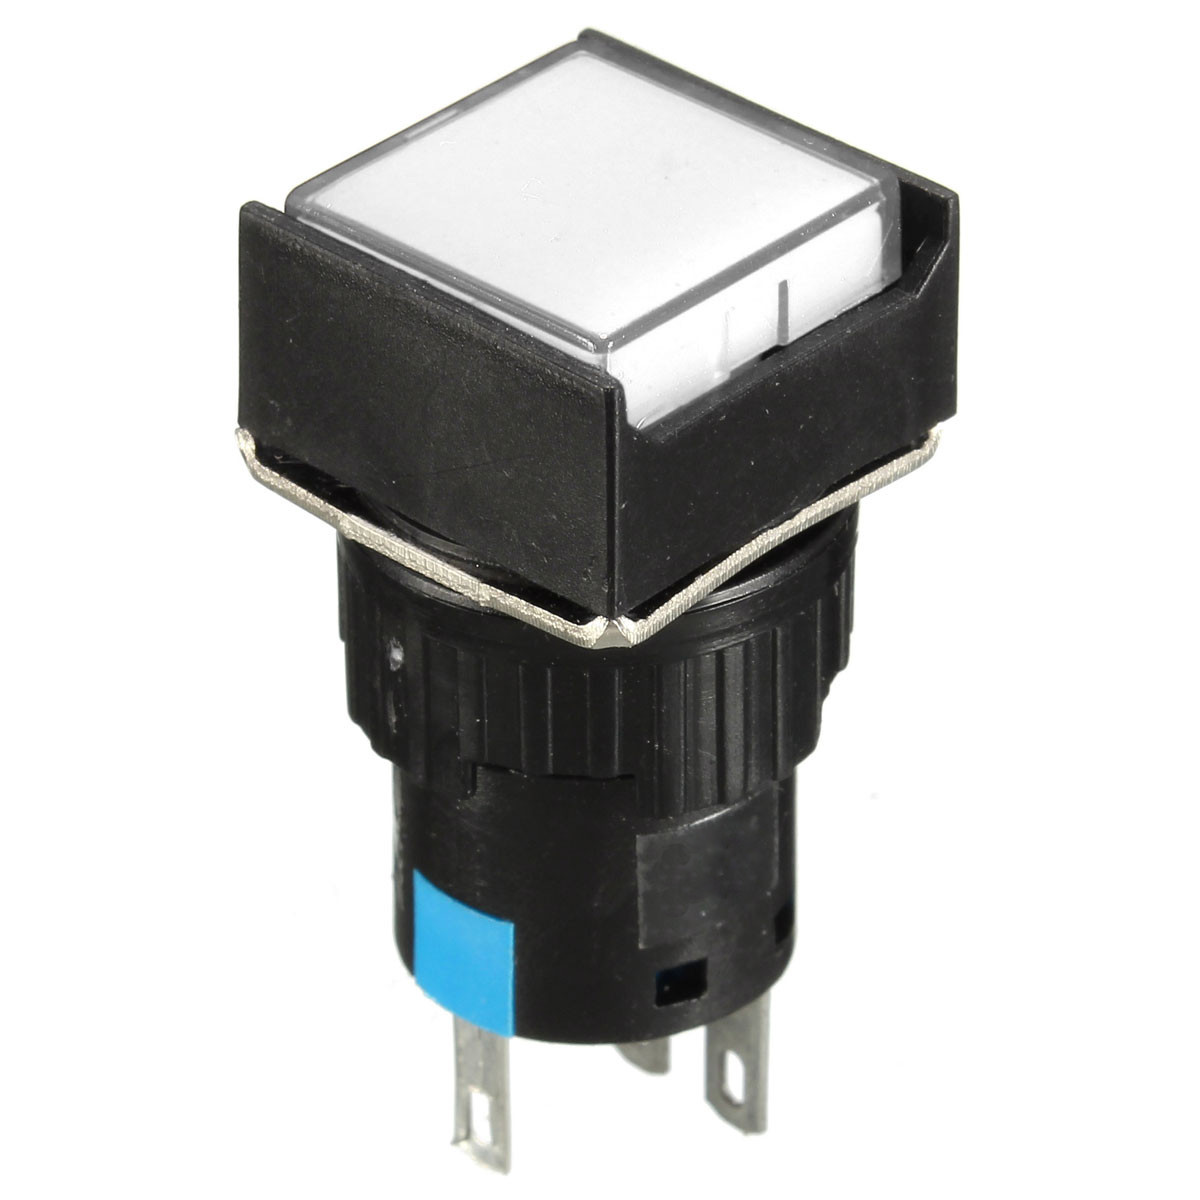 Momentary Latching Push Button Switch Rectangular Dc 12v 24v Led Cool Electronics Circuits A